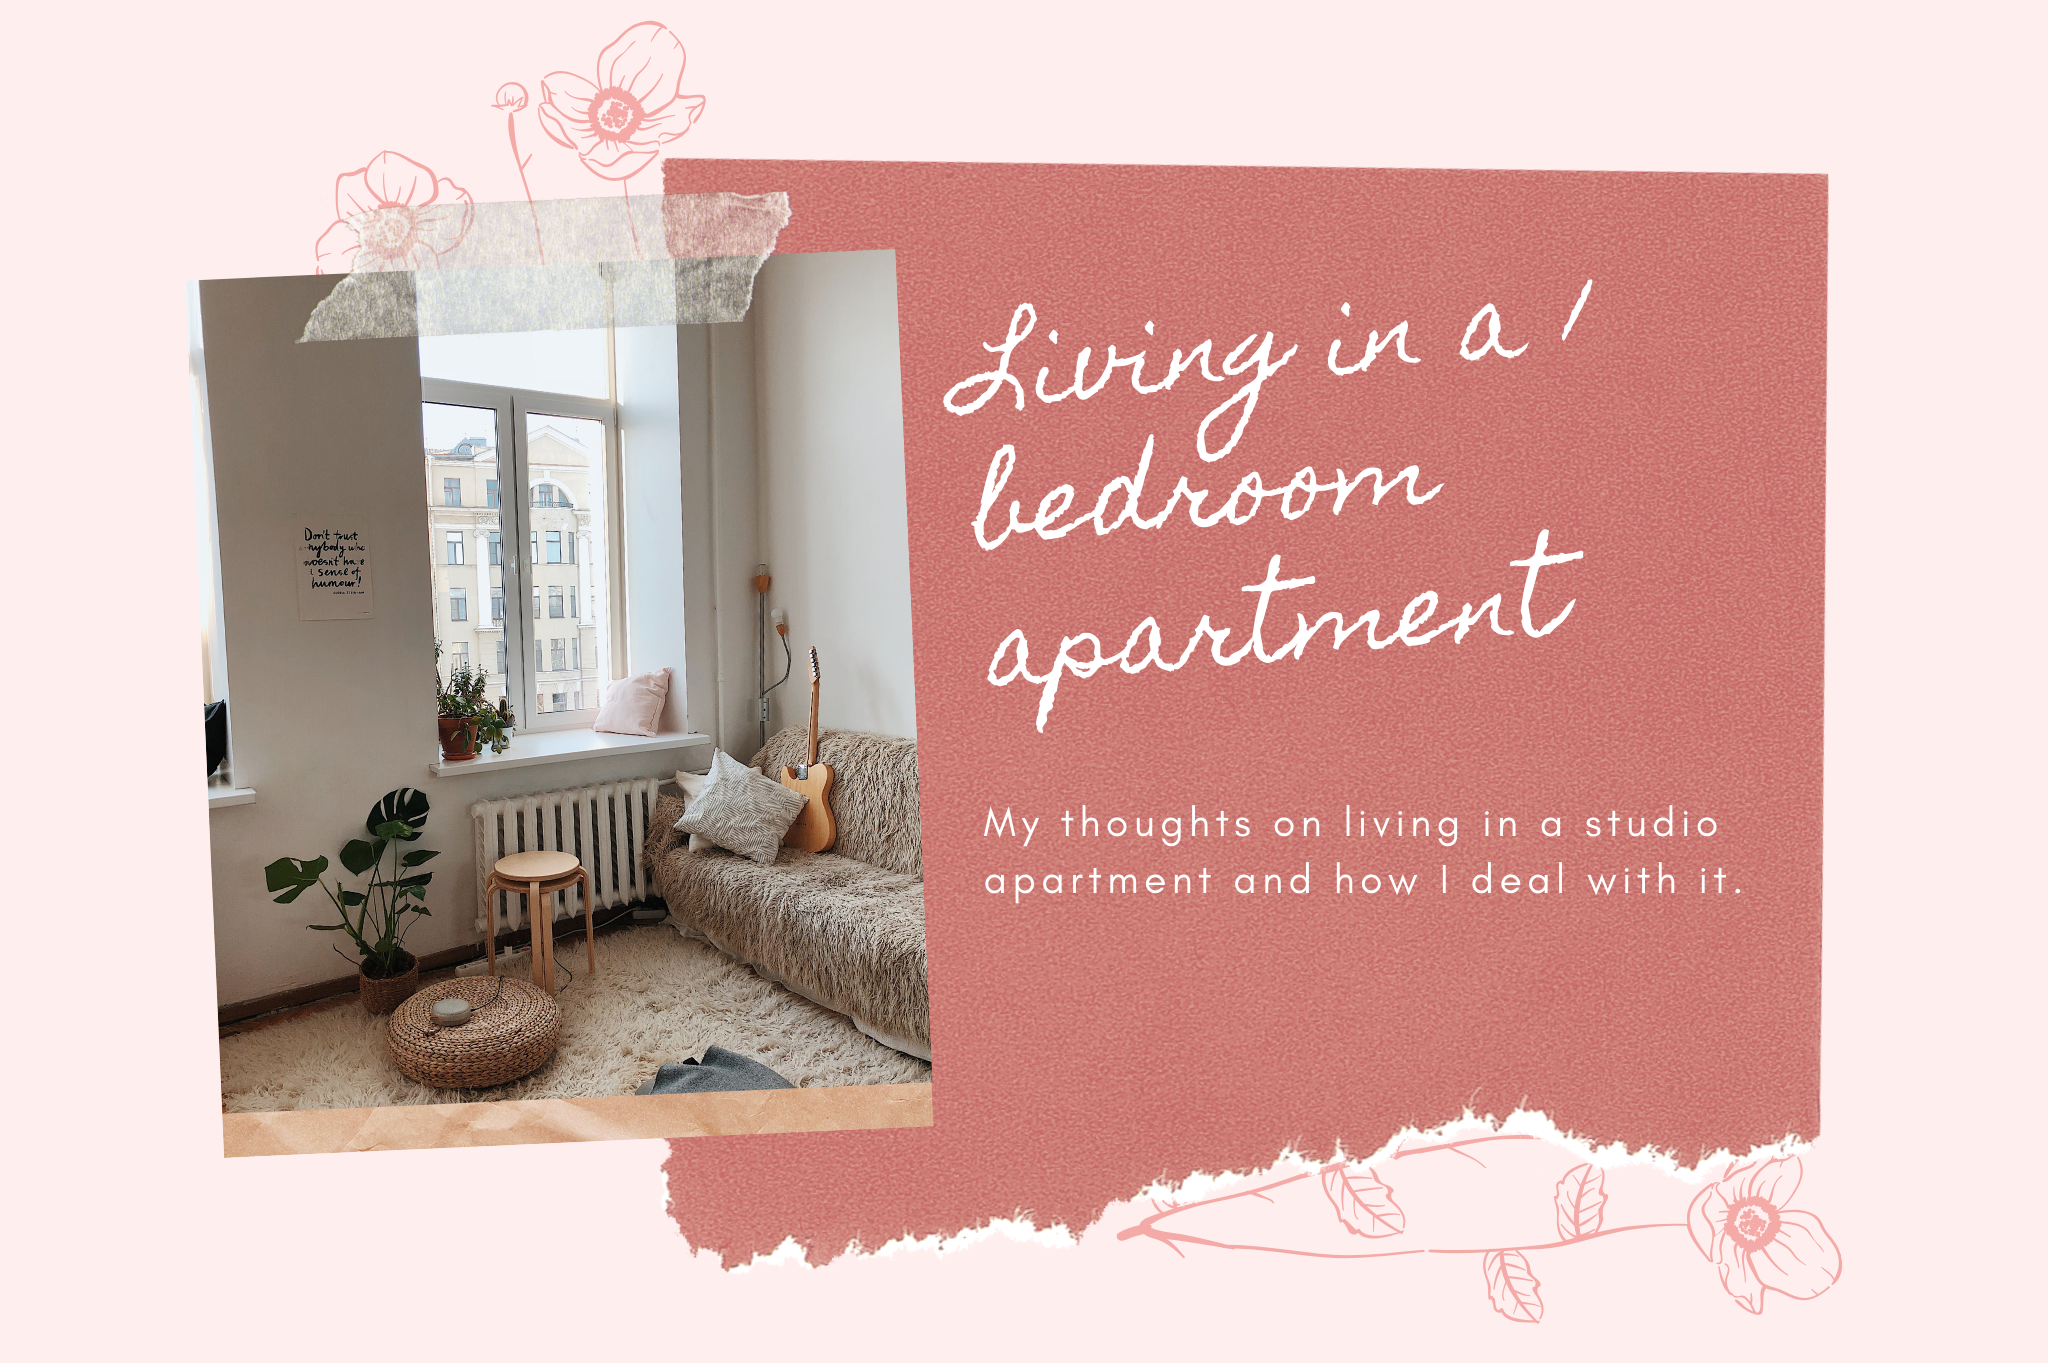 living in a 1 bedroom apartment